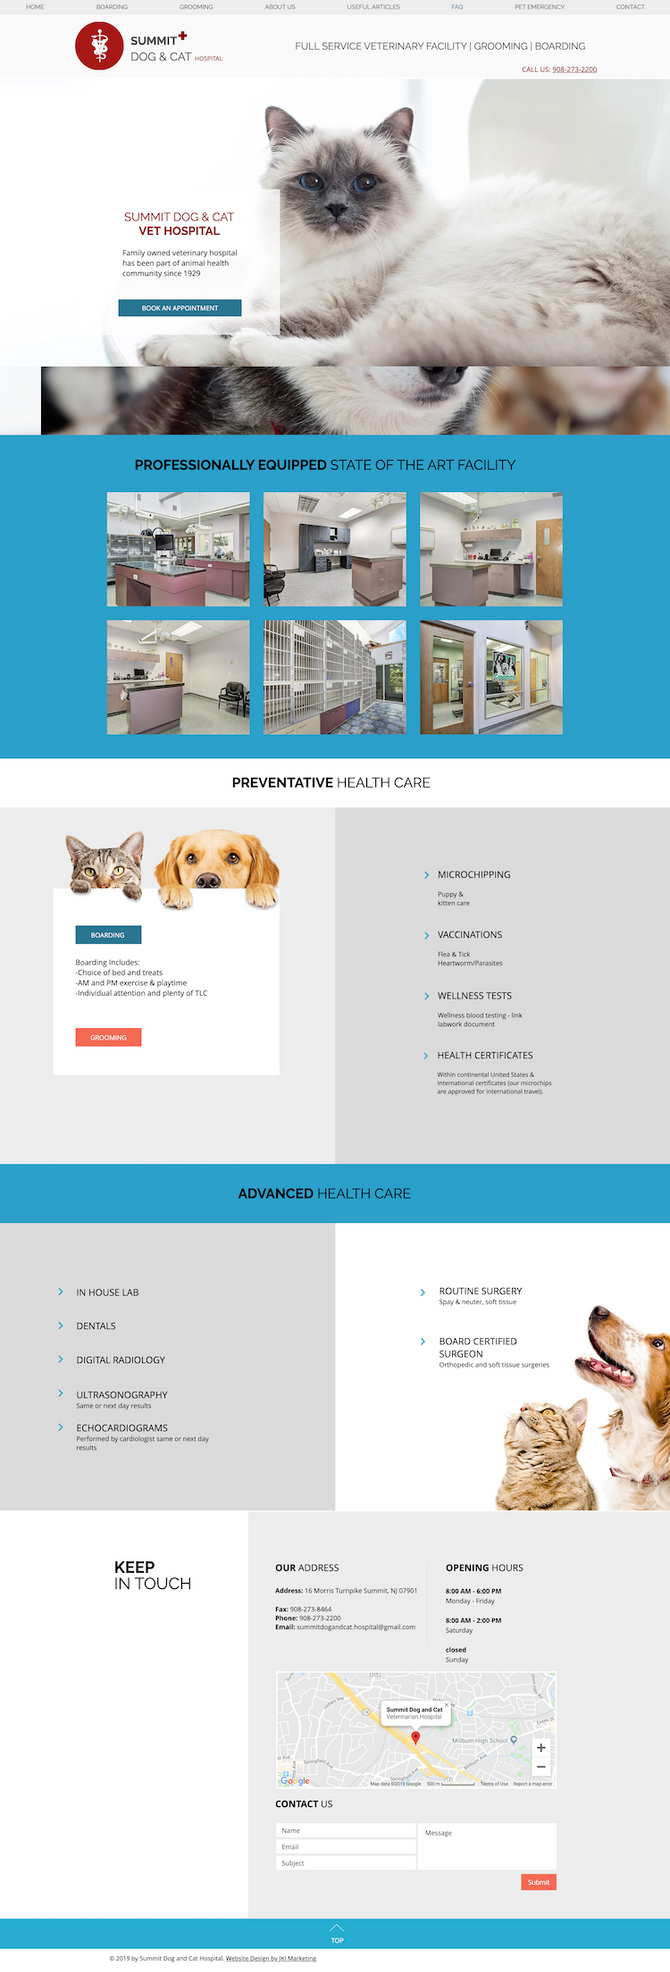 New Website Design for Summit Dog & Cat Hospital